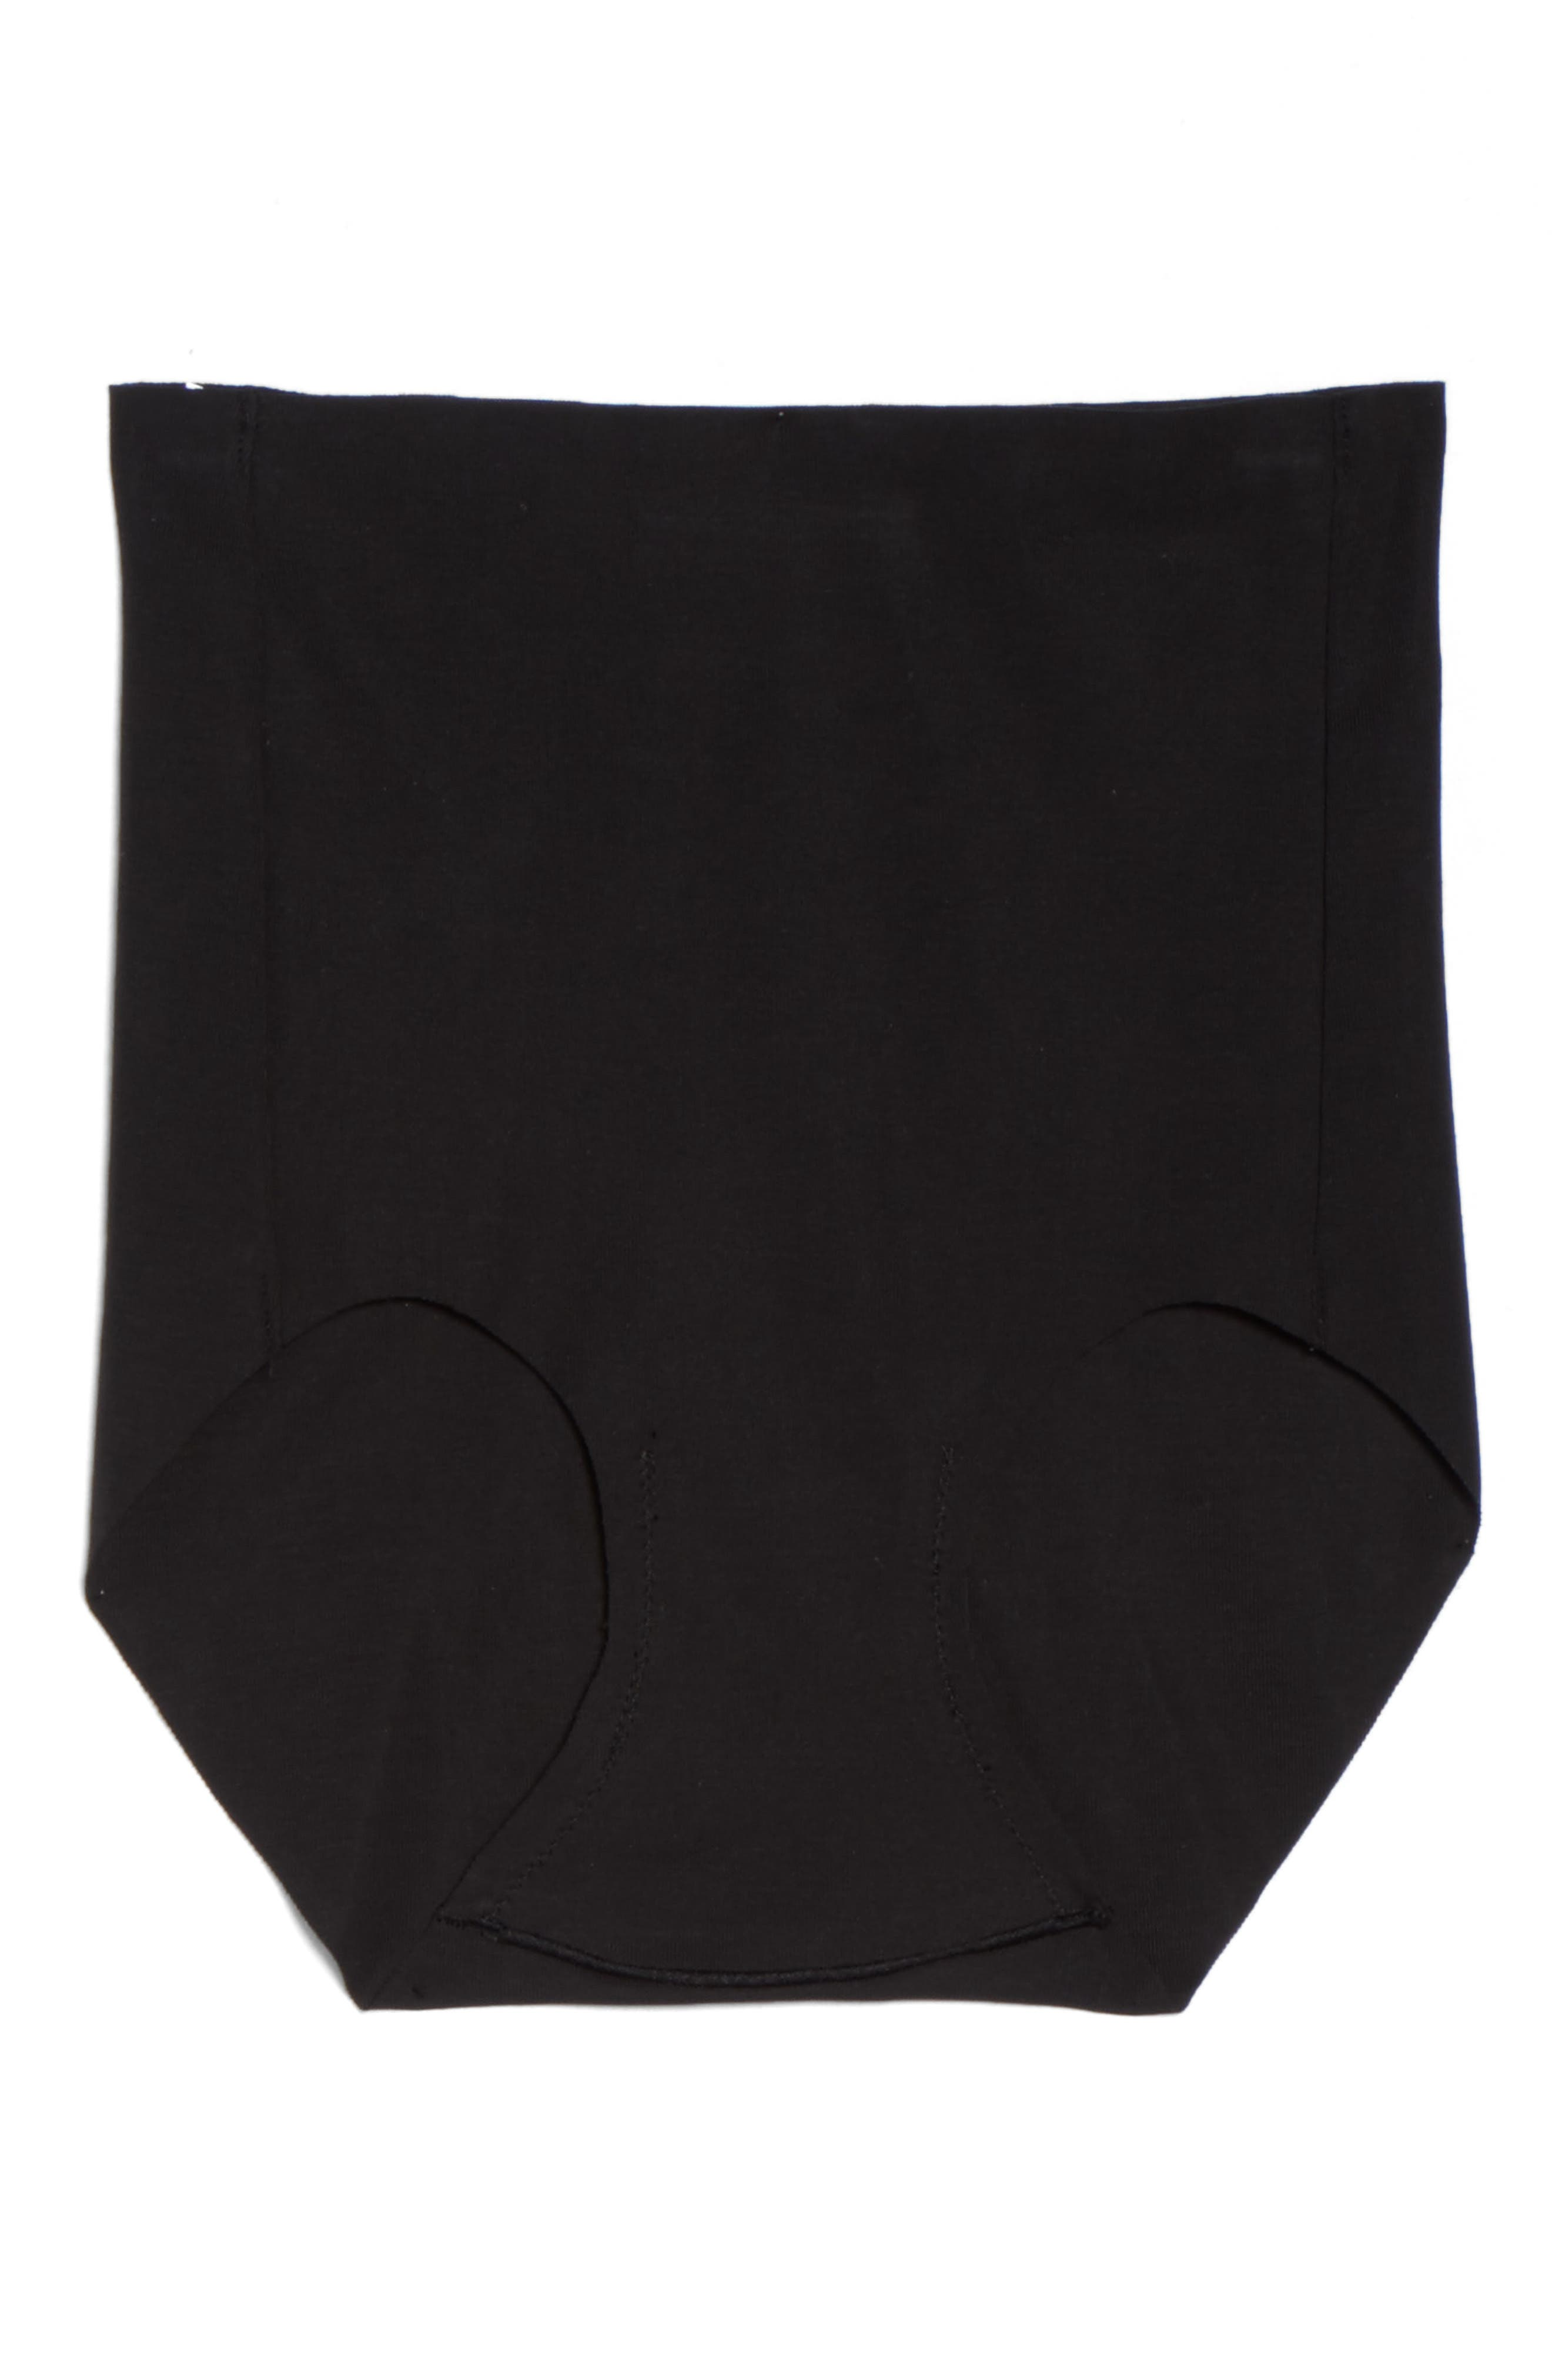 Beyond Naked High Waist Briefs,                             Alternate thumbnail 6, color,                             BLACK